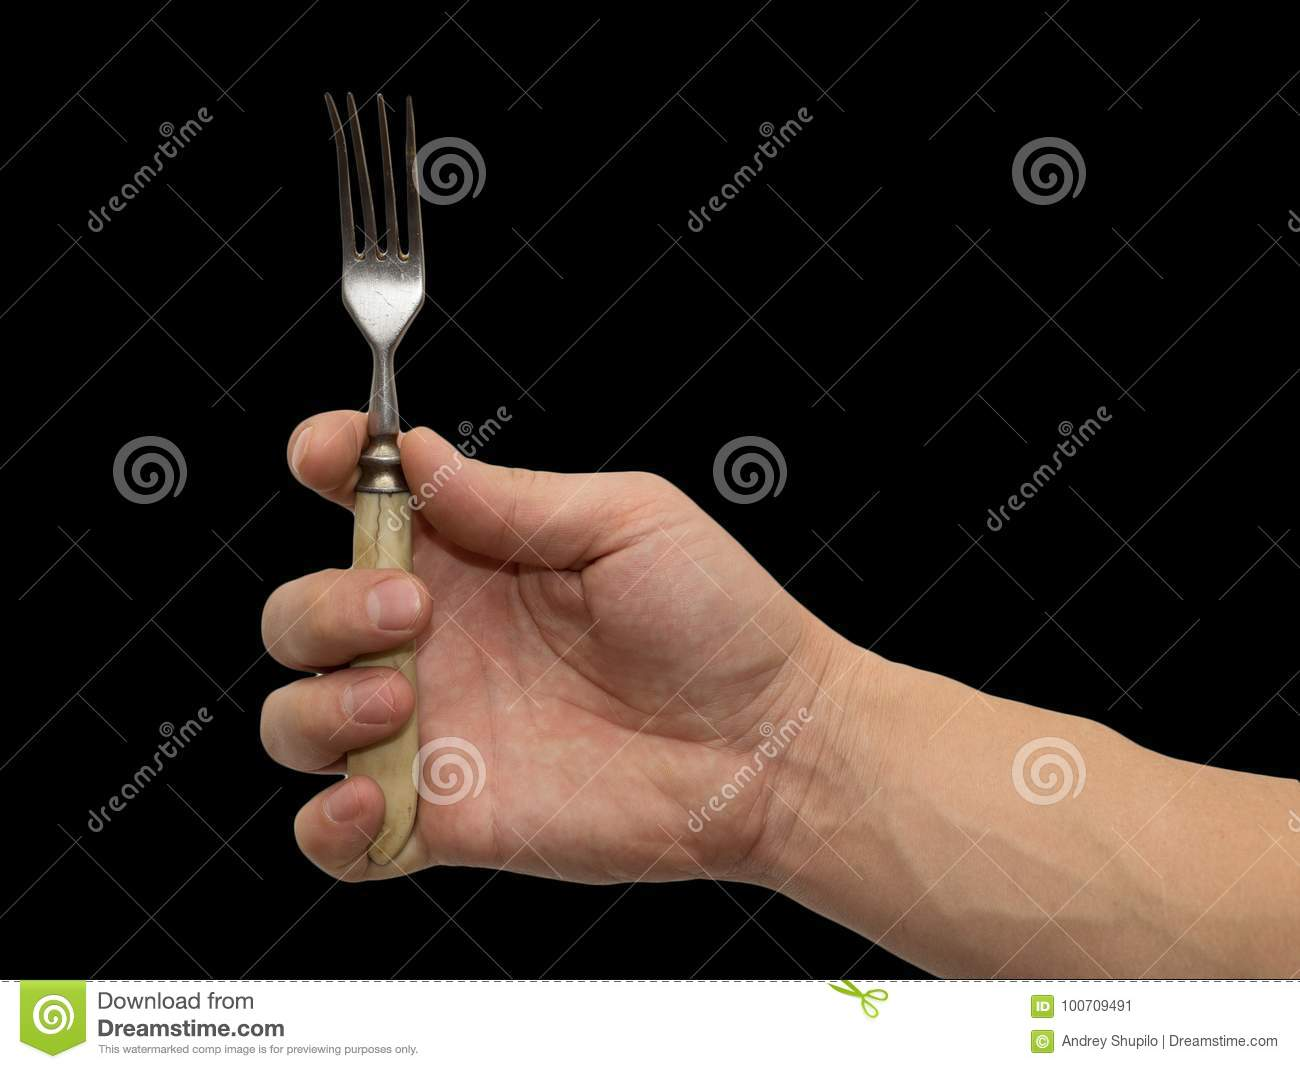 Dining fork in hand on a black background